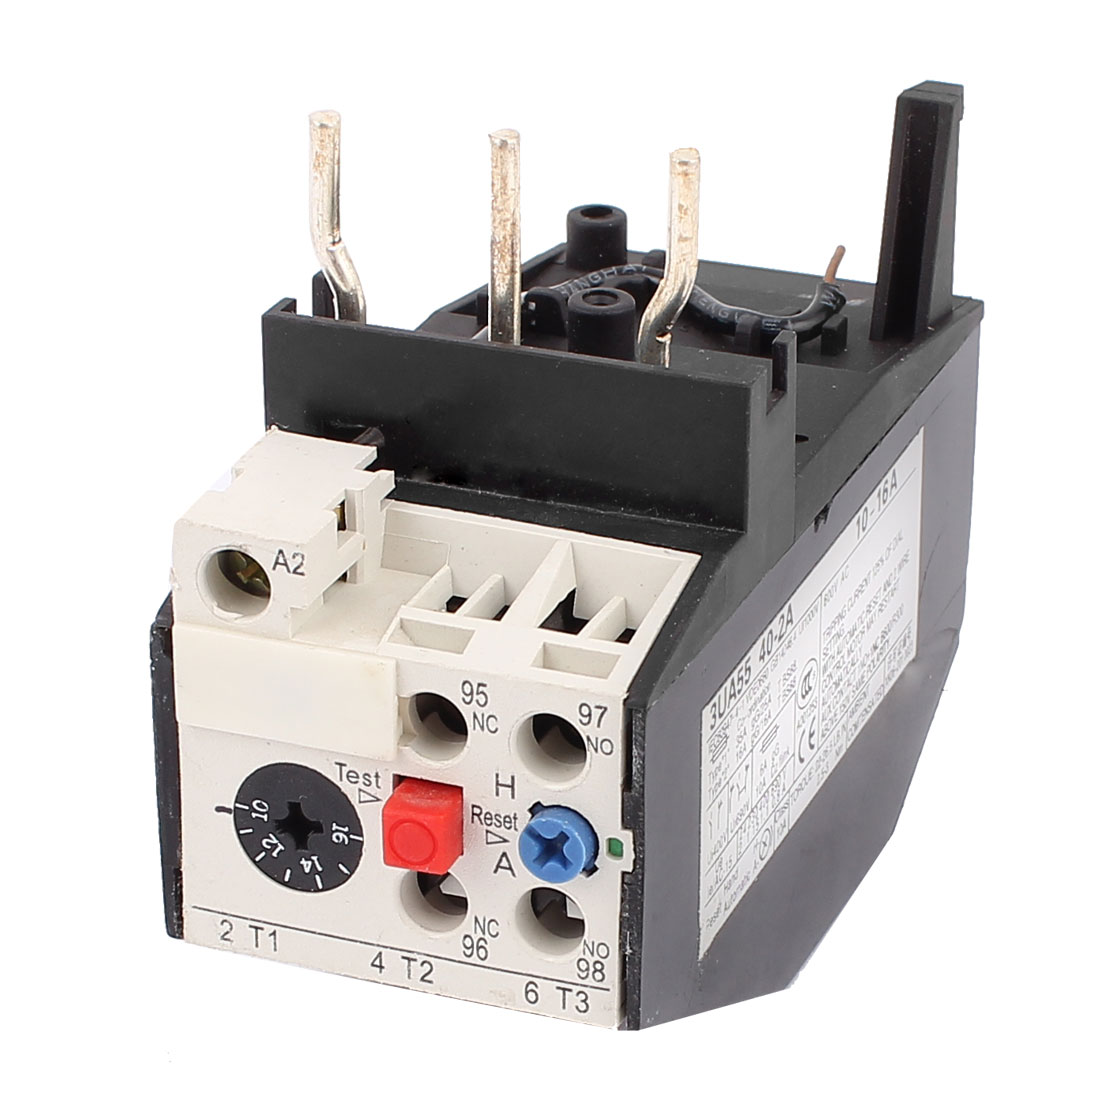 3UA55 40-2A 10-16A 2NO 2NC Adjustable Motor Protector Electric Thermal Overload Relay